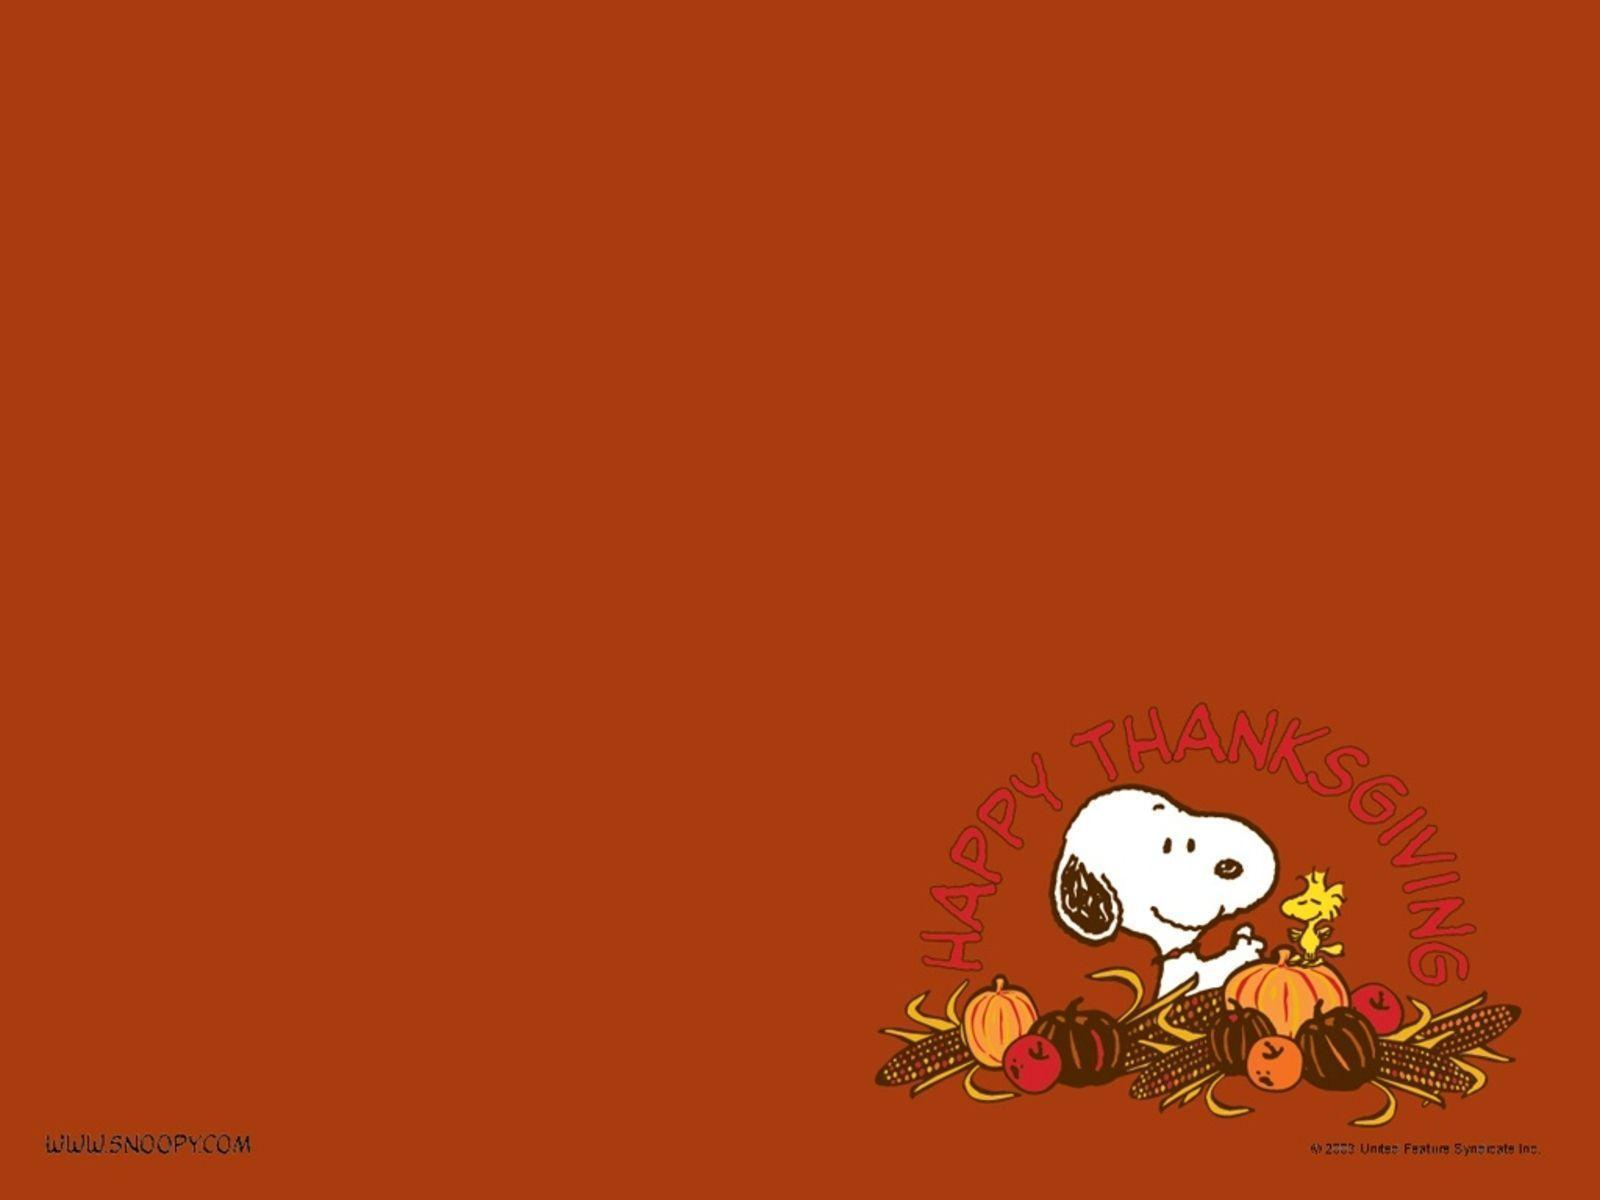 Thanksgiving Image HD Wallpapers